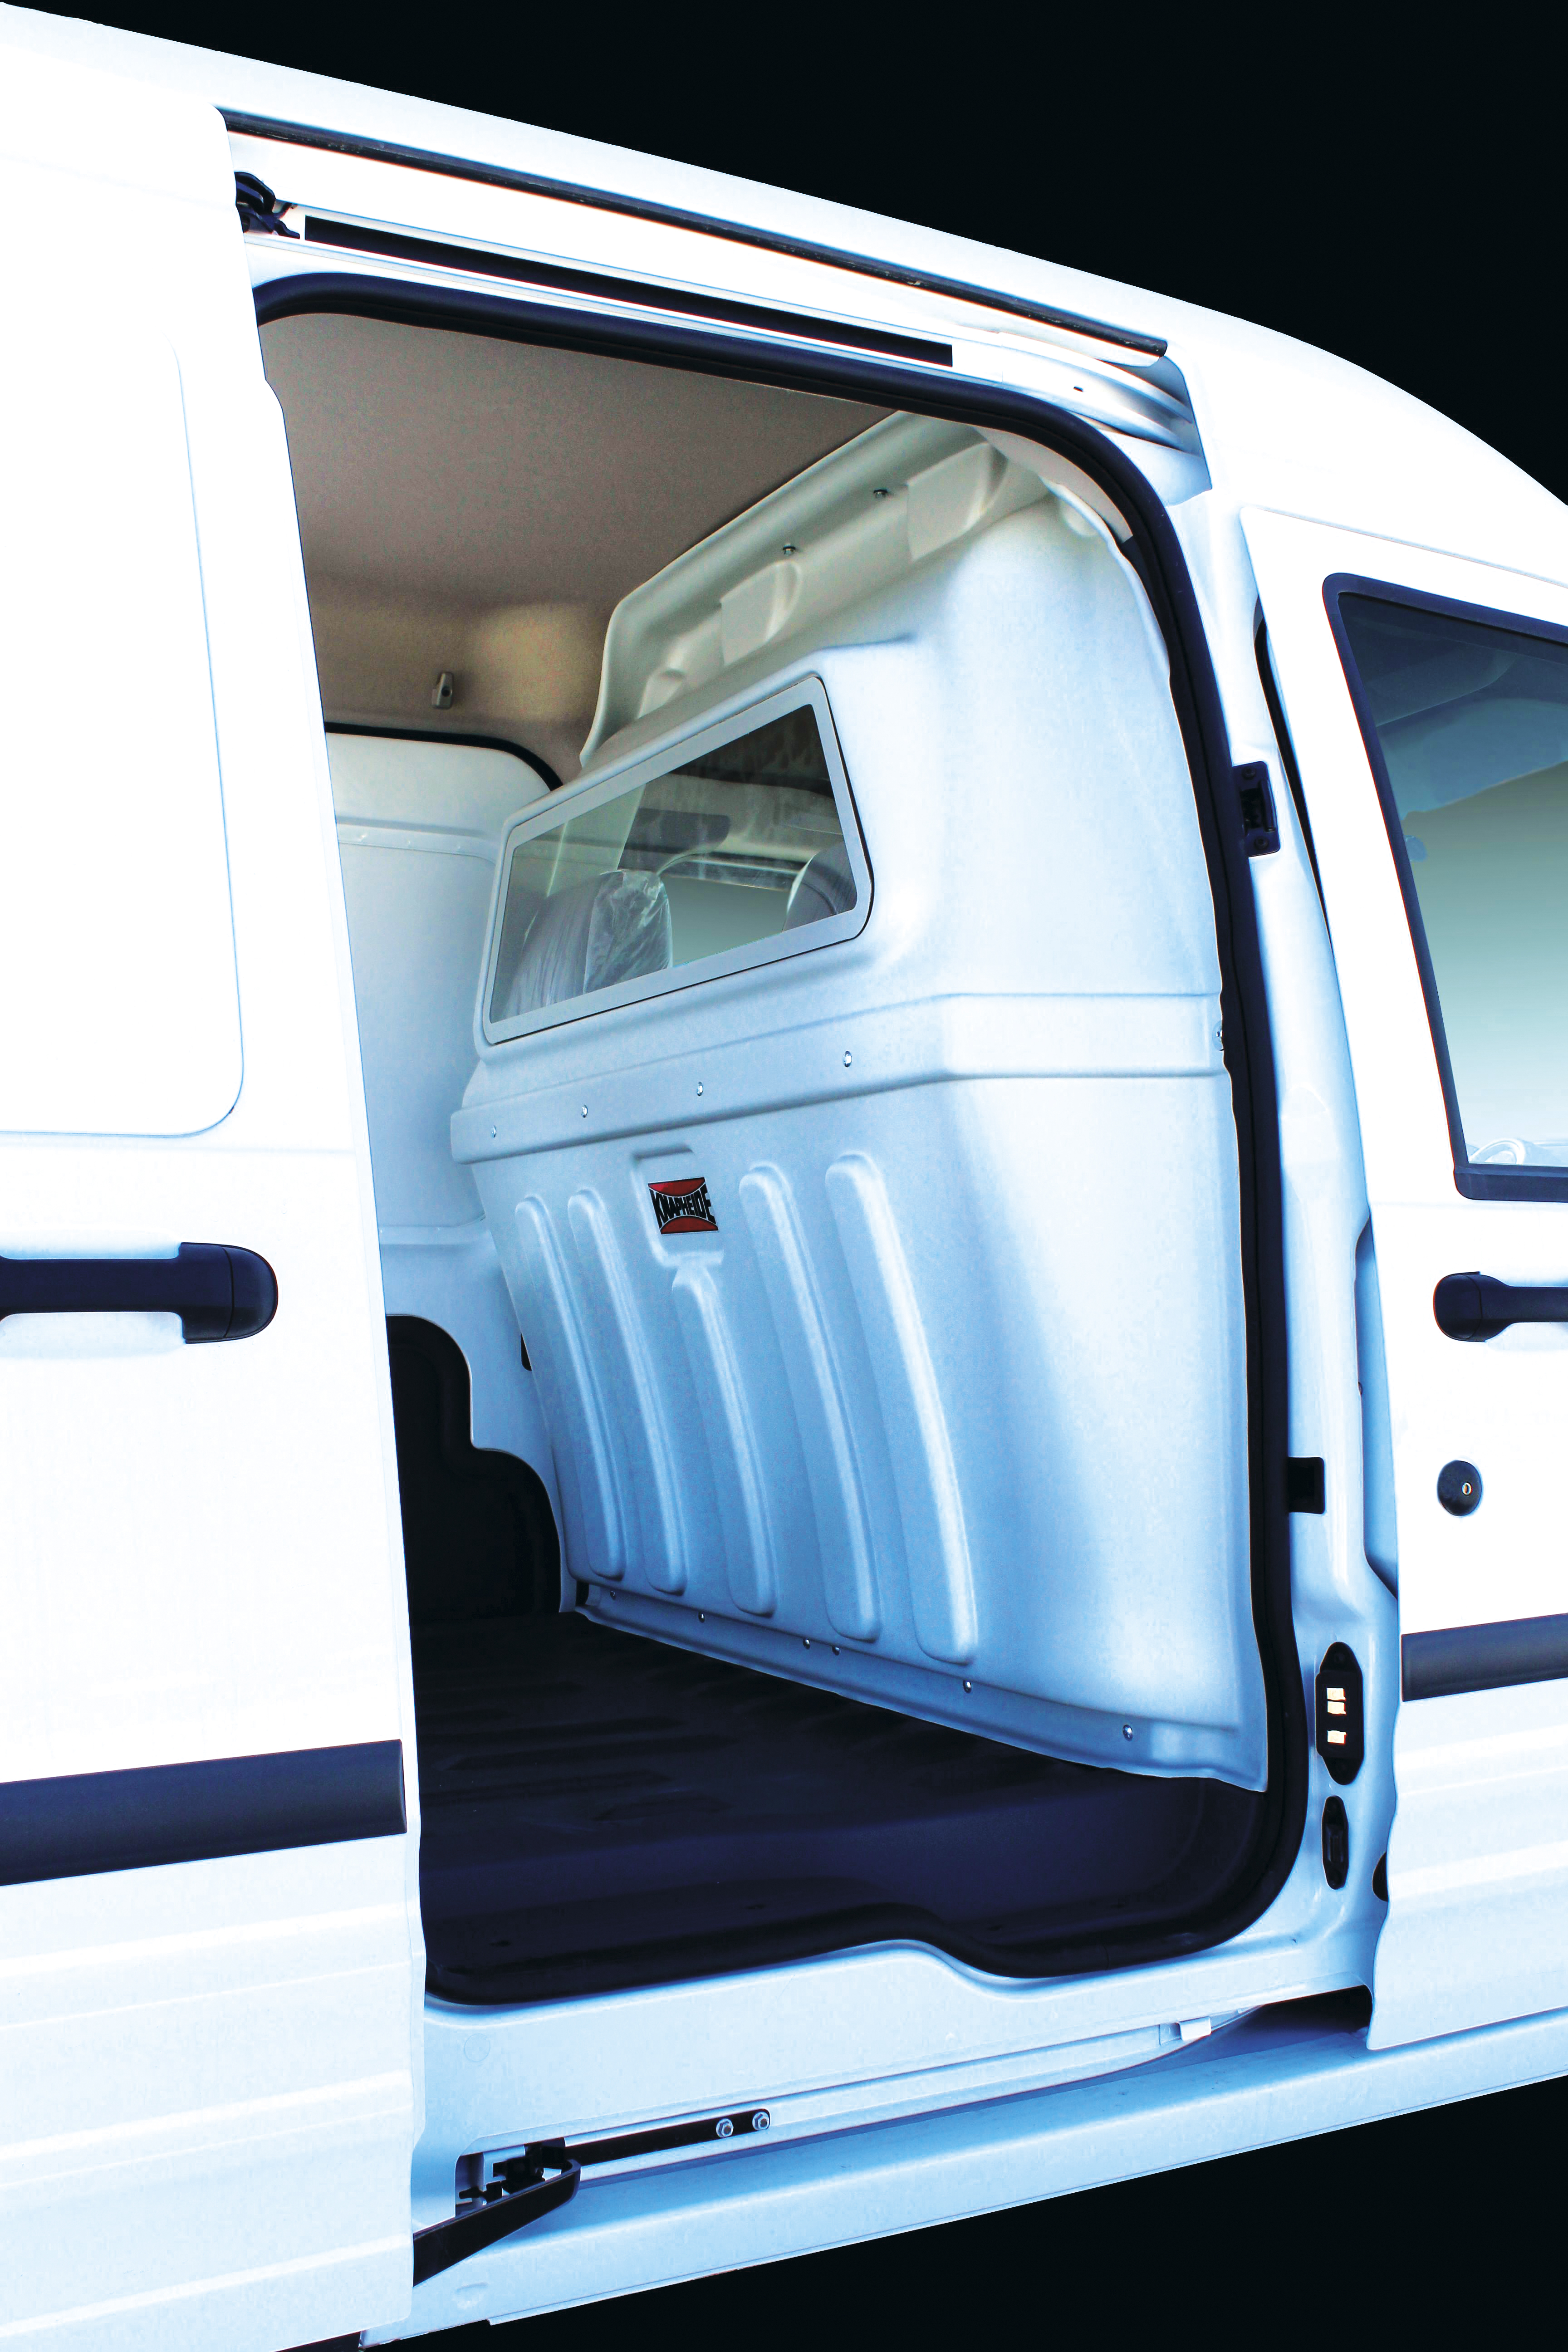 6 Questions to Consider When Evaluating Lightweight Materials for Truck Upfits